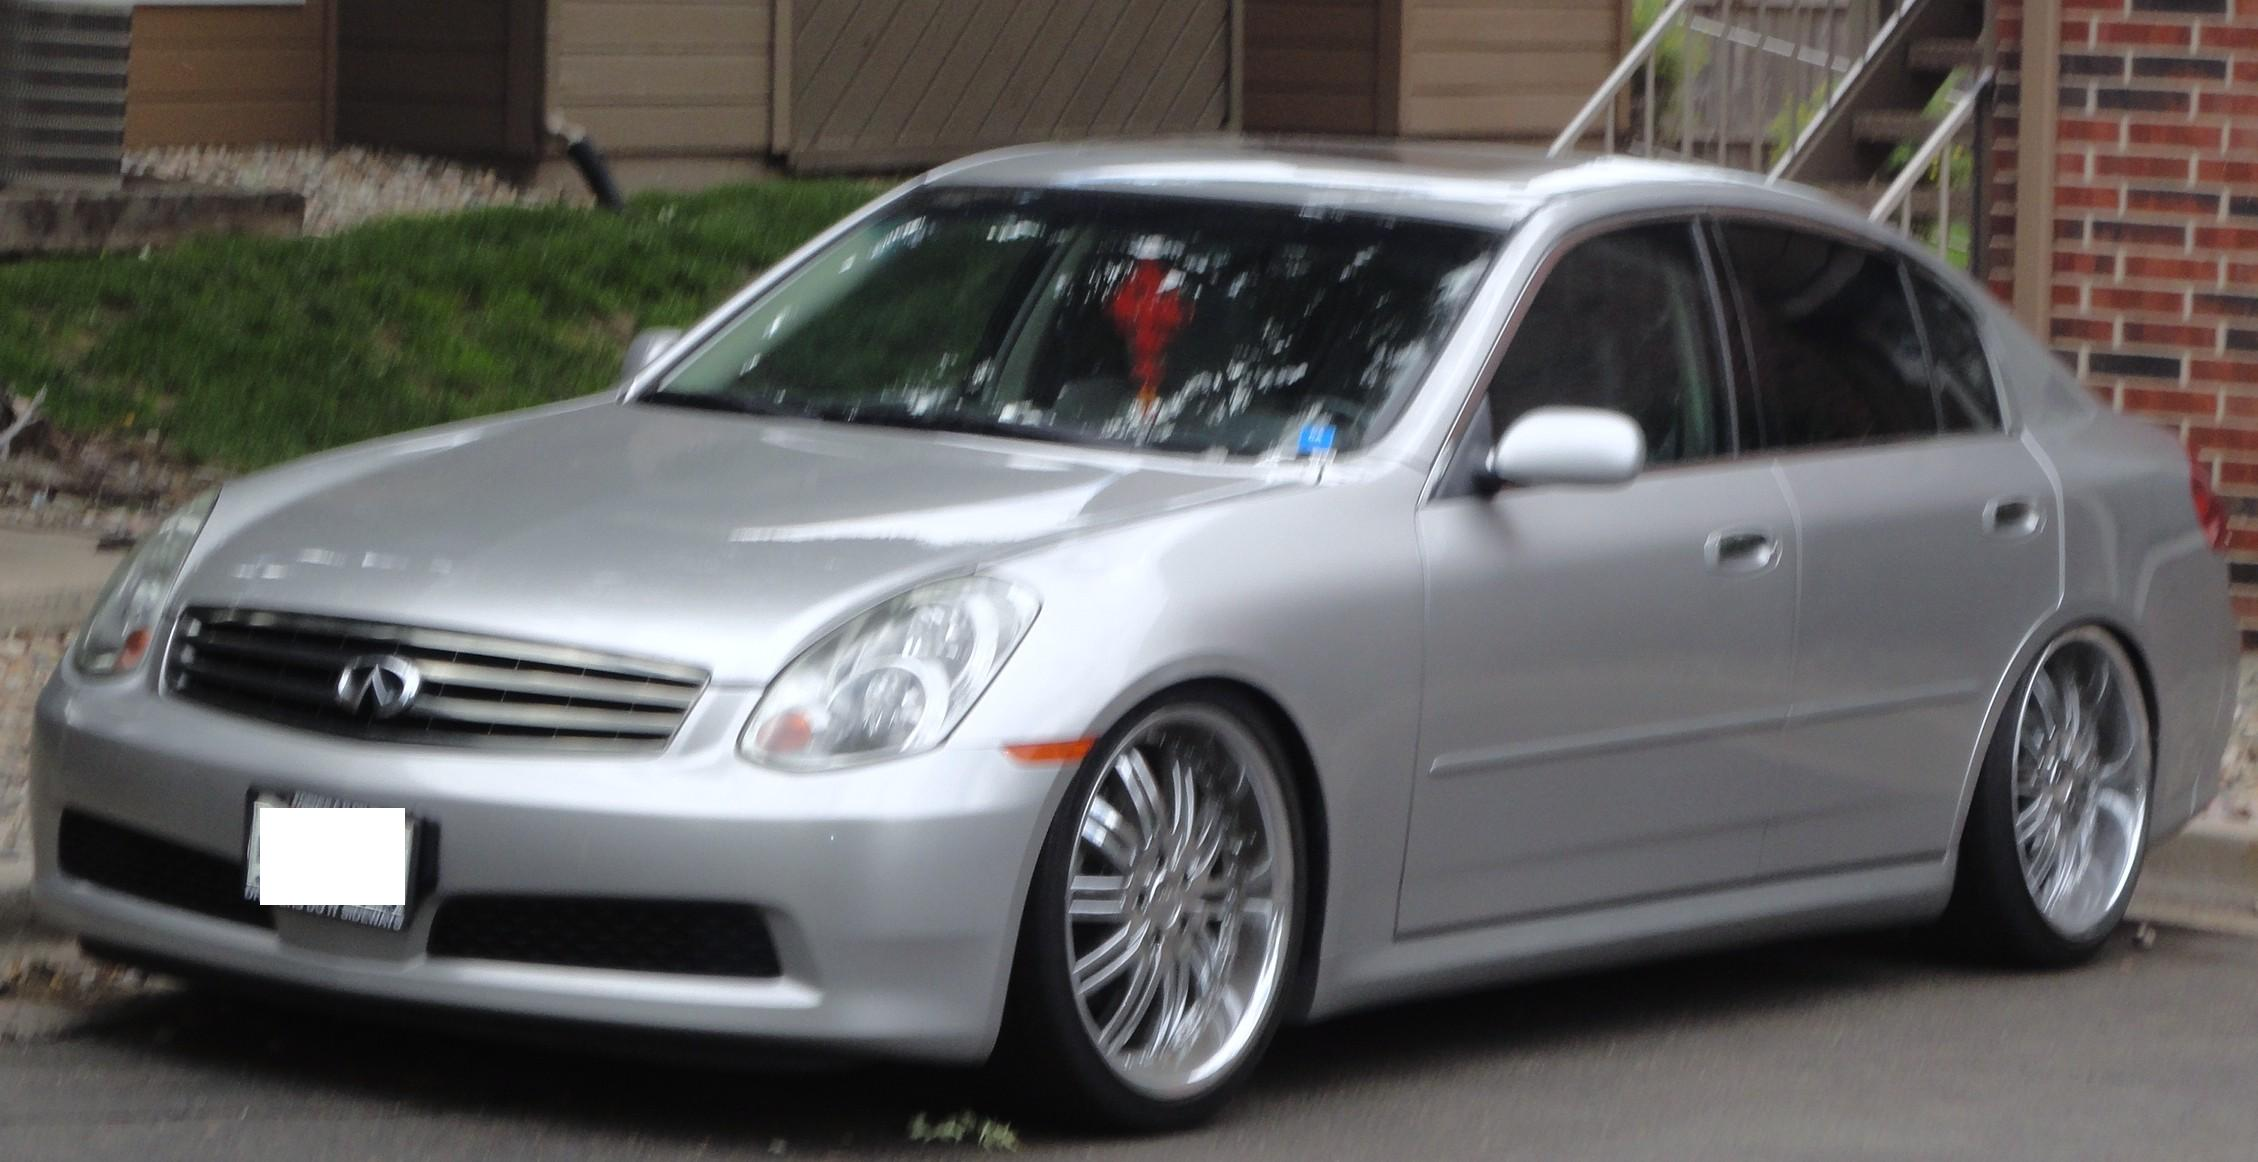 2005 infiniti g35 for sale lake forest california 2005 infiniti g35 information and photos zombiedrive download vanachro Images